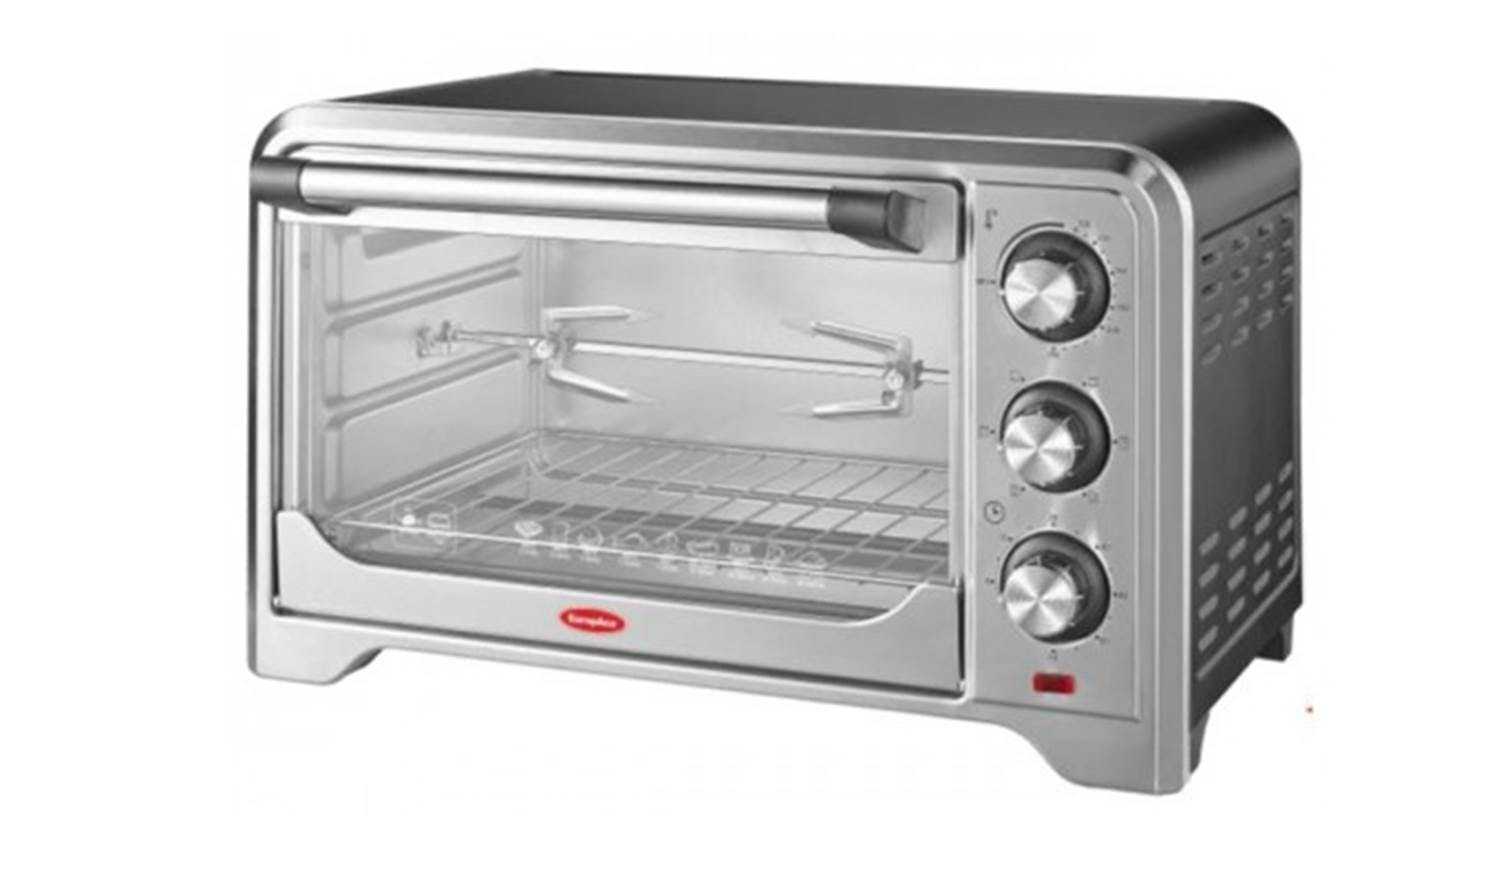 Kitchen Appliances Singapore Europace Eeo2201s 20l Electric Oven Harvey Norman Singapore